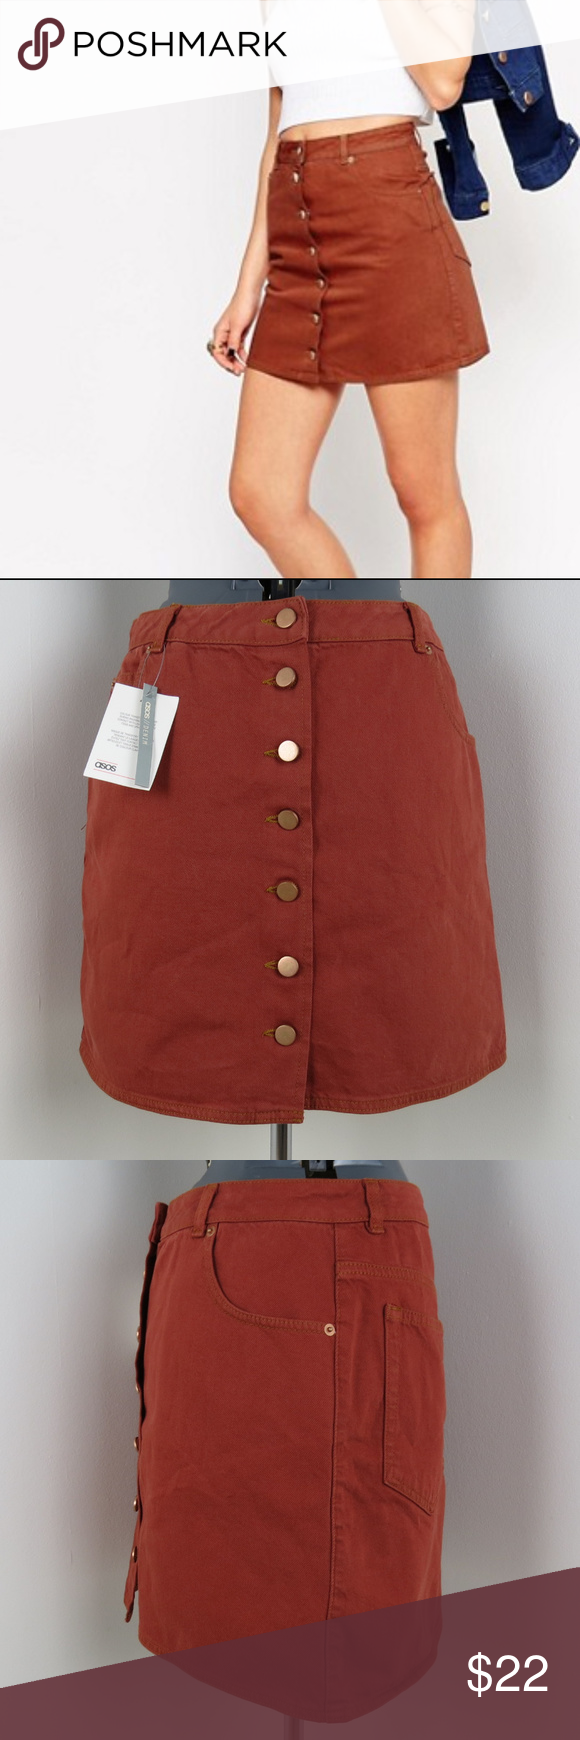 6d1dd01a8 NWT ASOS | Rust Denim Dolly Button Skirt (A4) NWT rust red denim mini skirt  with 7 copper color buttons down the front by ASOS Denim. 100% Cotton.